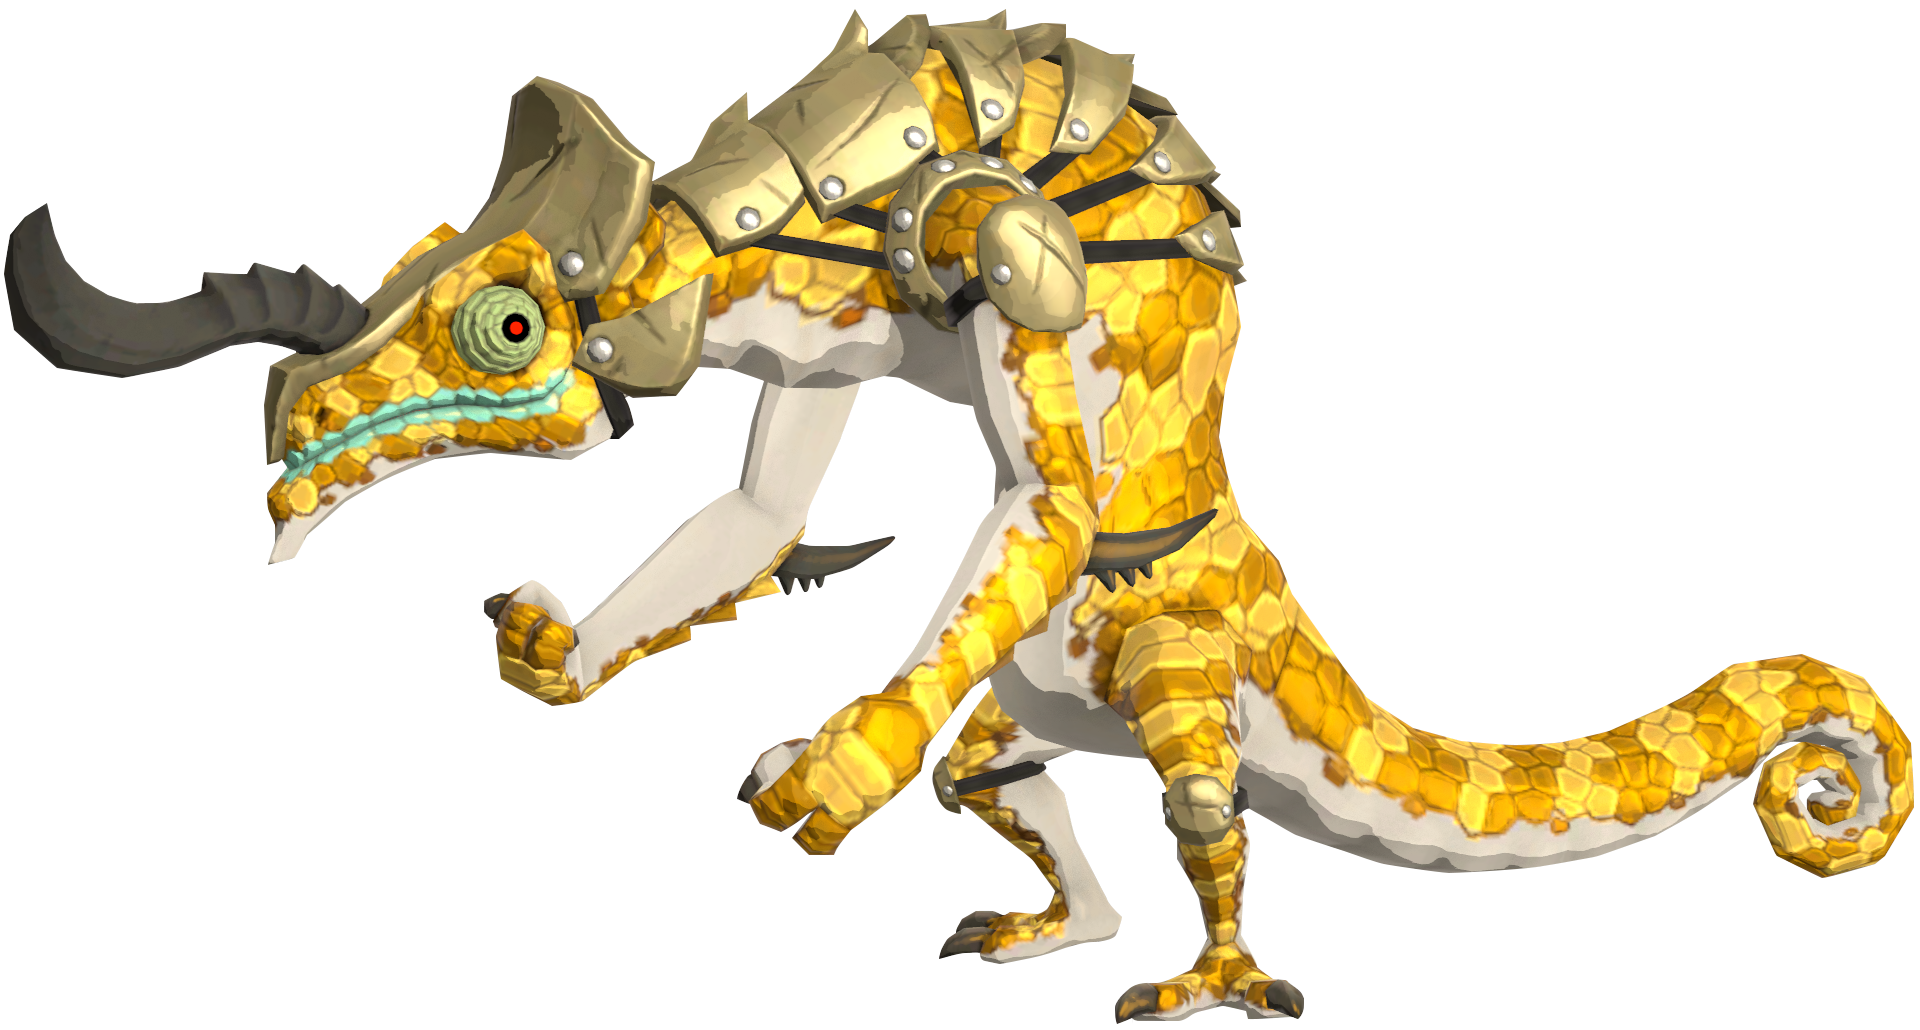 BotW_Golden_Lizalfos_Model.png